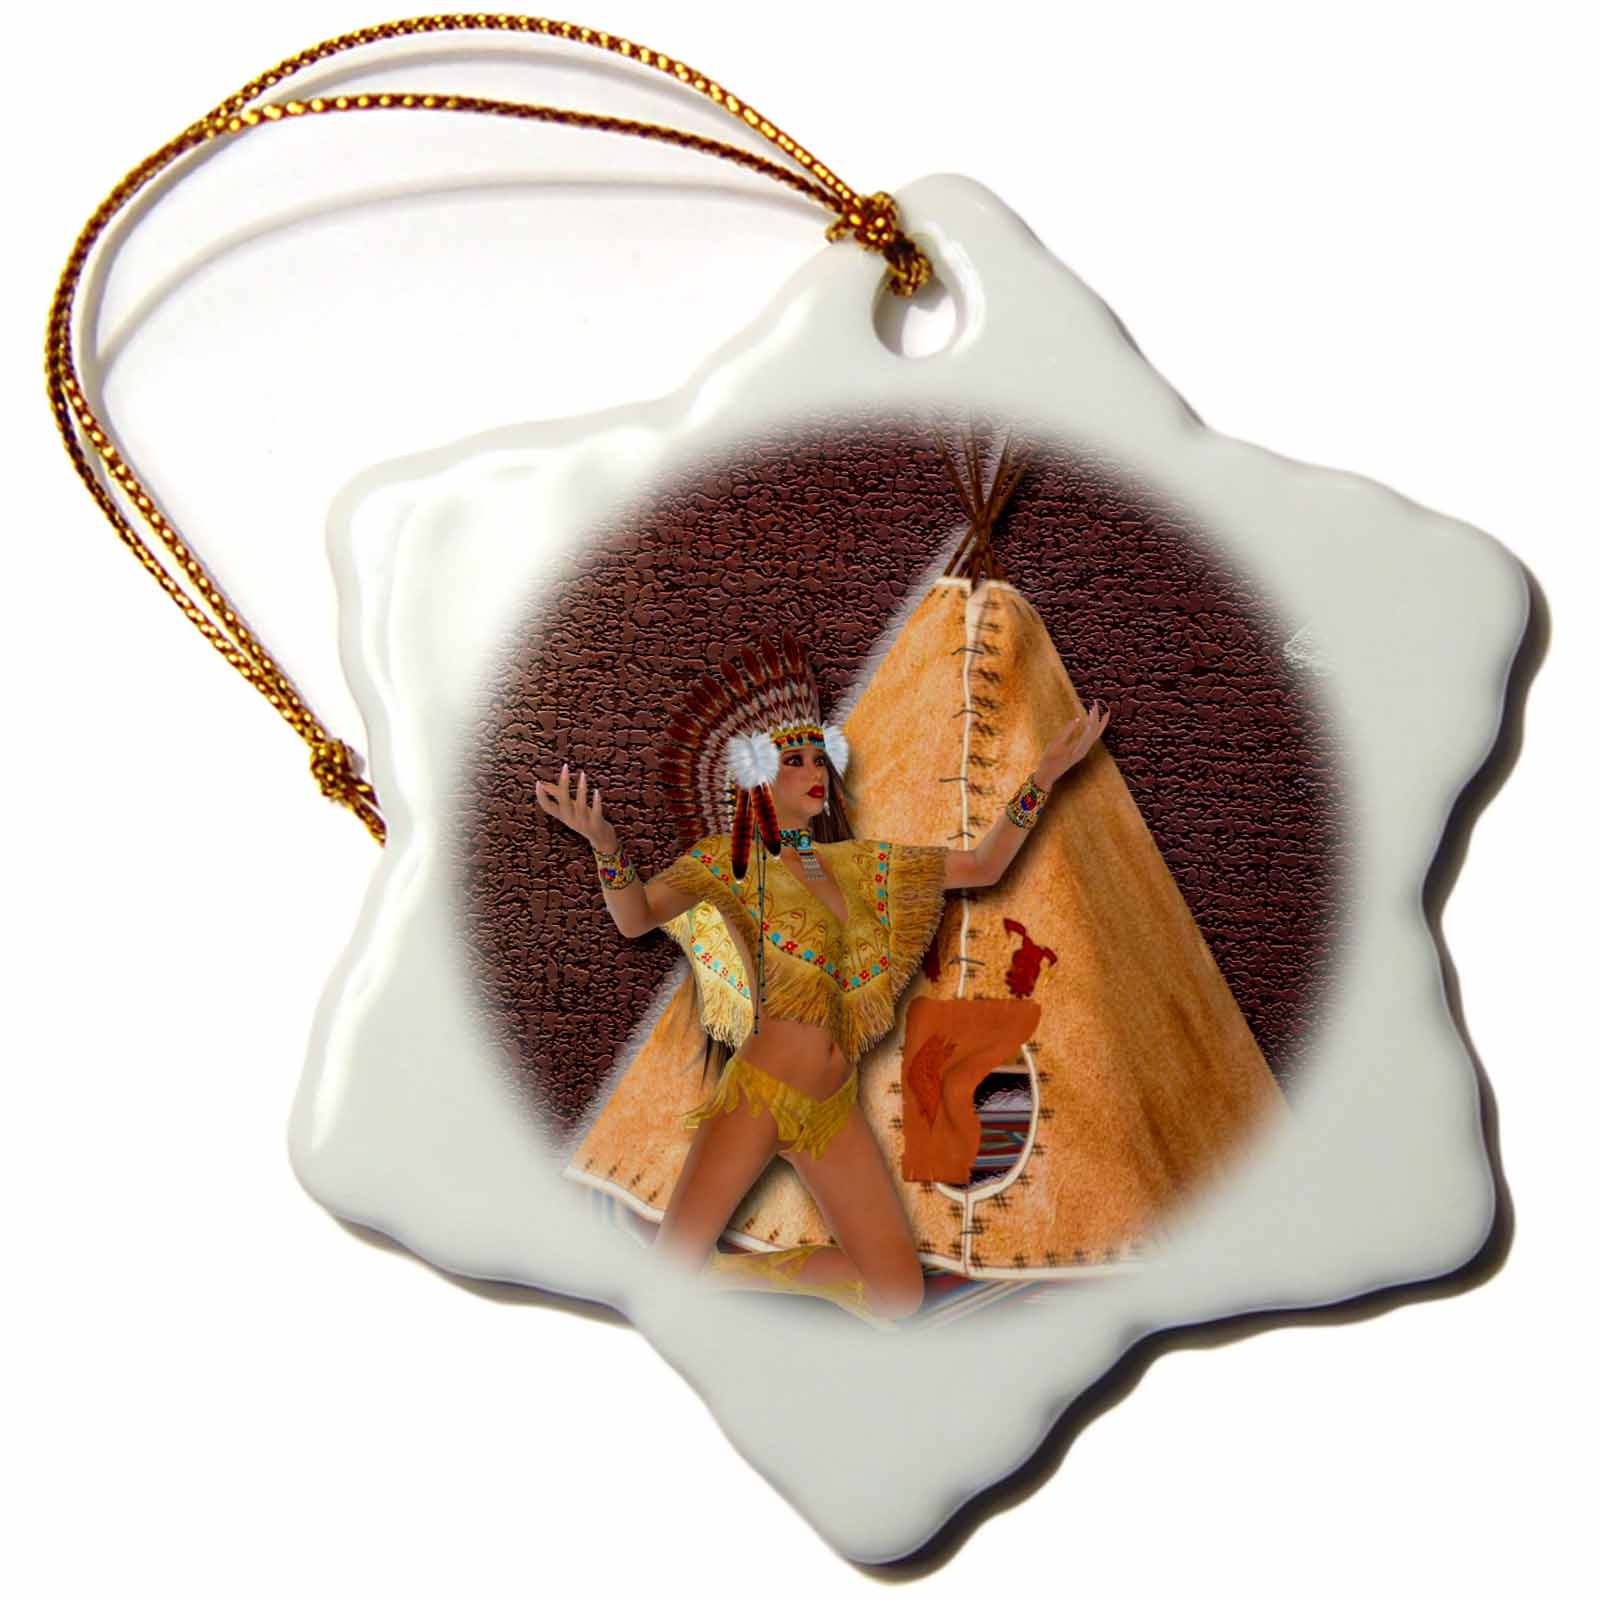 3dRose Designer One of A Kind Native American Art, Snowflake Ornament, Porcelain, 3-inch